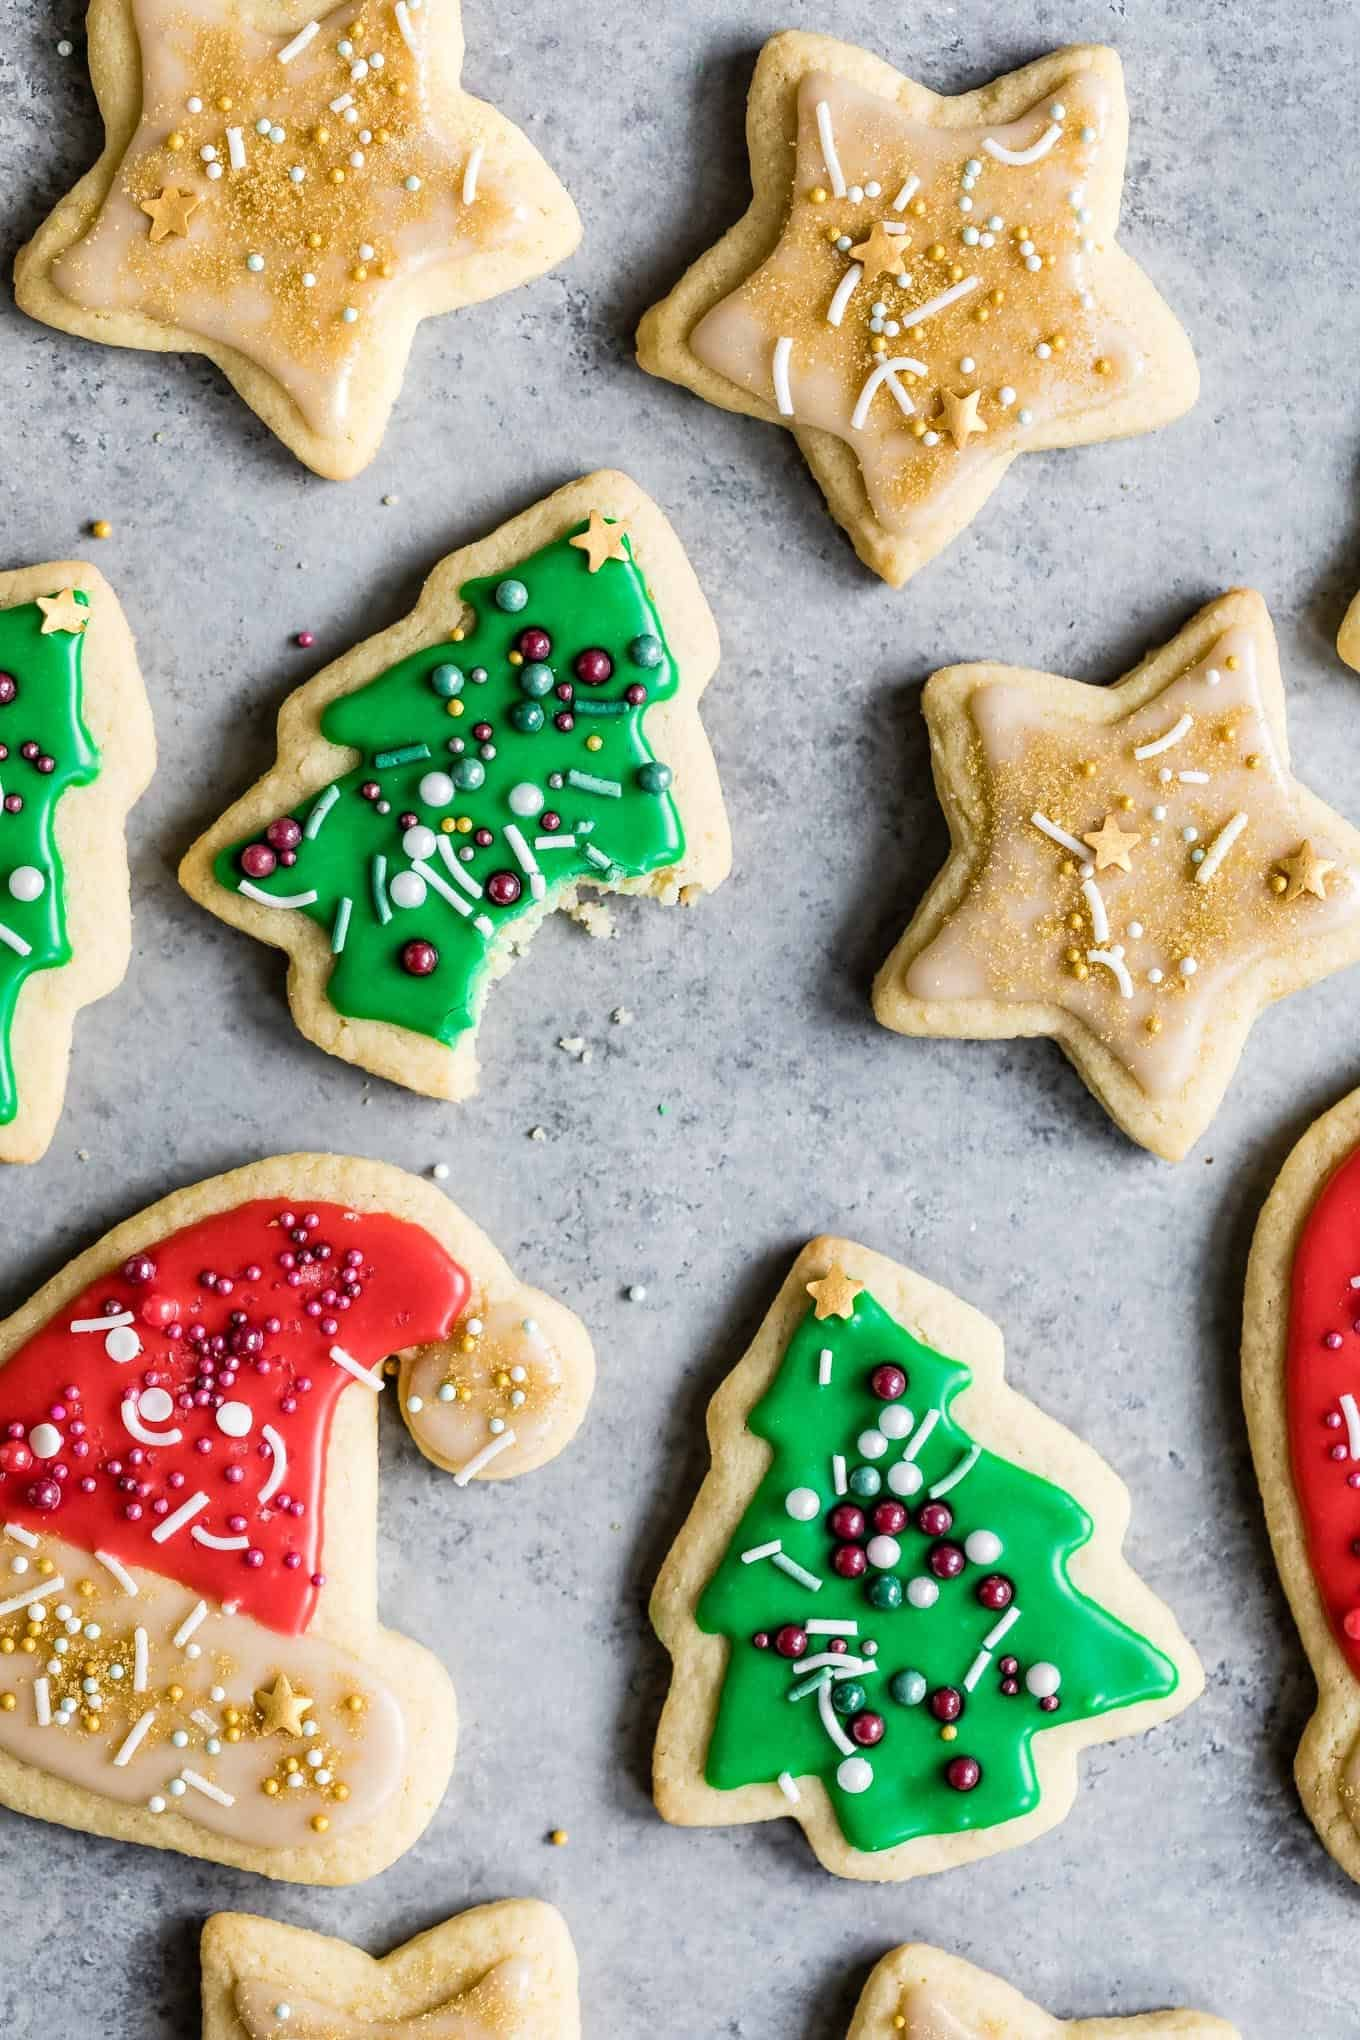 These soft cut-out gluten-free sugar cookies are decorated with super easy icing and festive sprinkles. They're the perfect gluten-free holiday cookie to leave out for Santa! #sugarcookies #glutenfree #cookies #icing #holiday #christmas #christmascookies #recipe #glutenfreecookies #easy #almond #cutout #cutoutsugarcookies